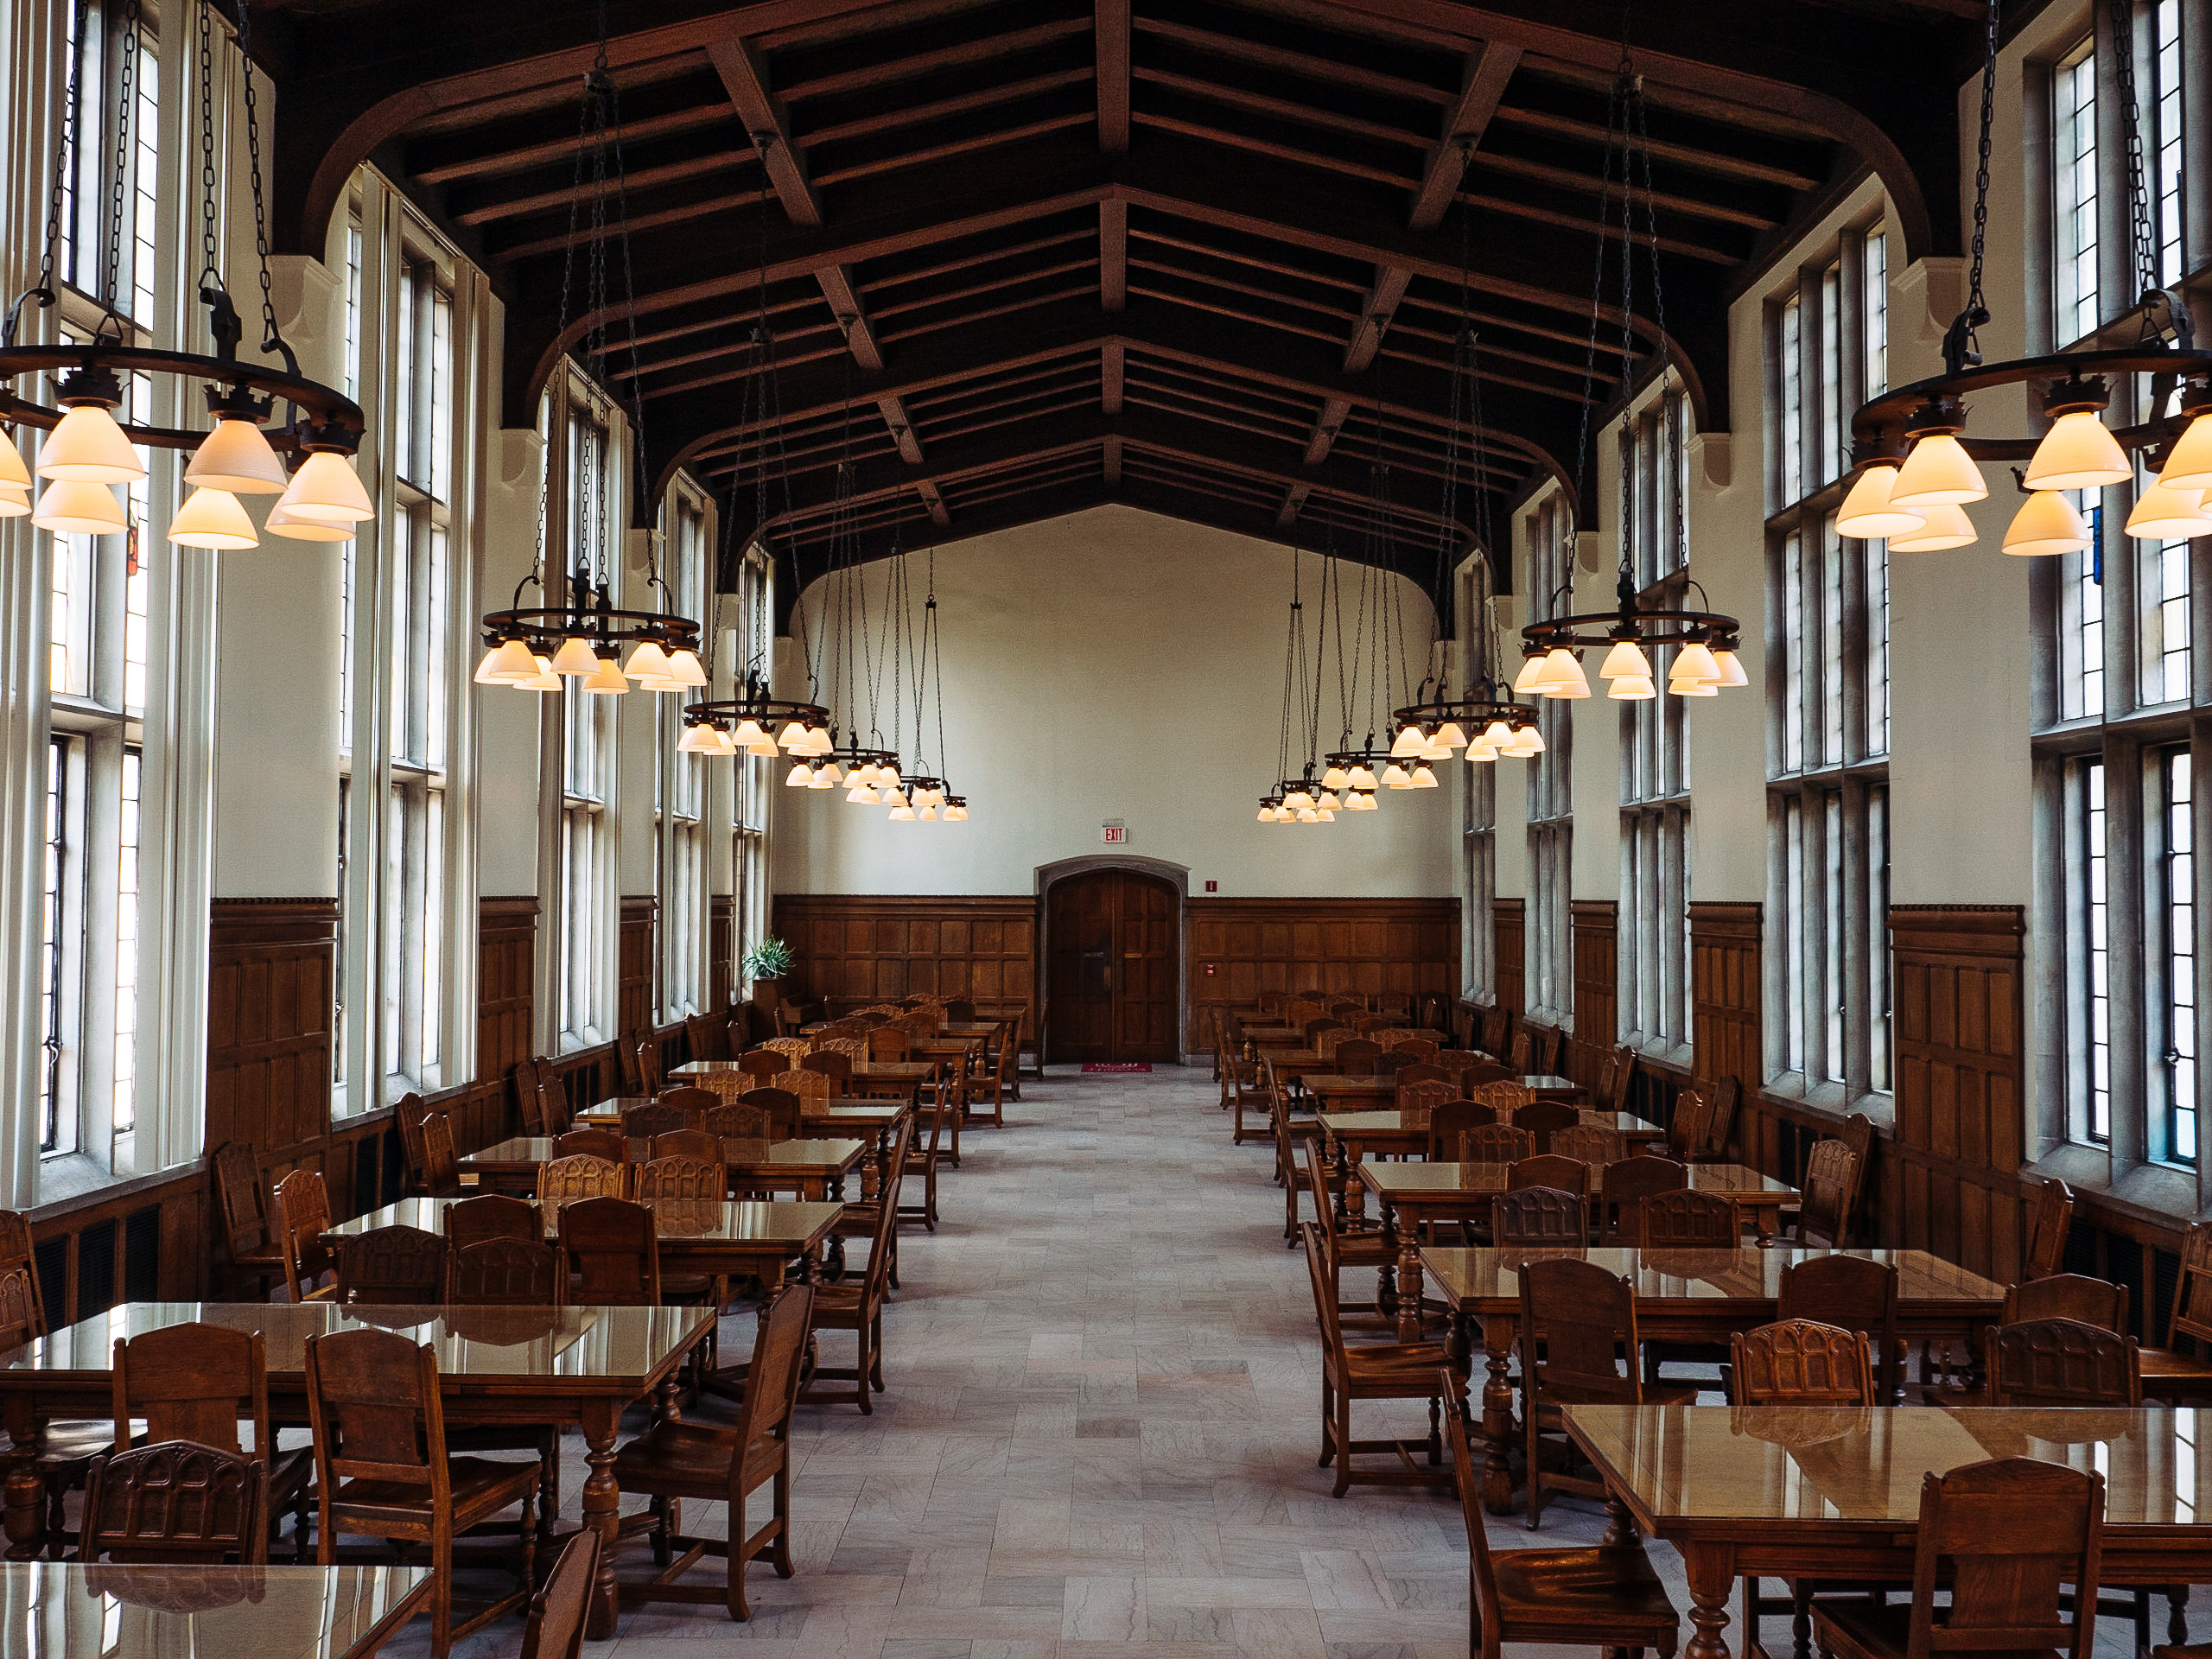 long dining hall with historic wooden tables and chairs